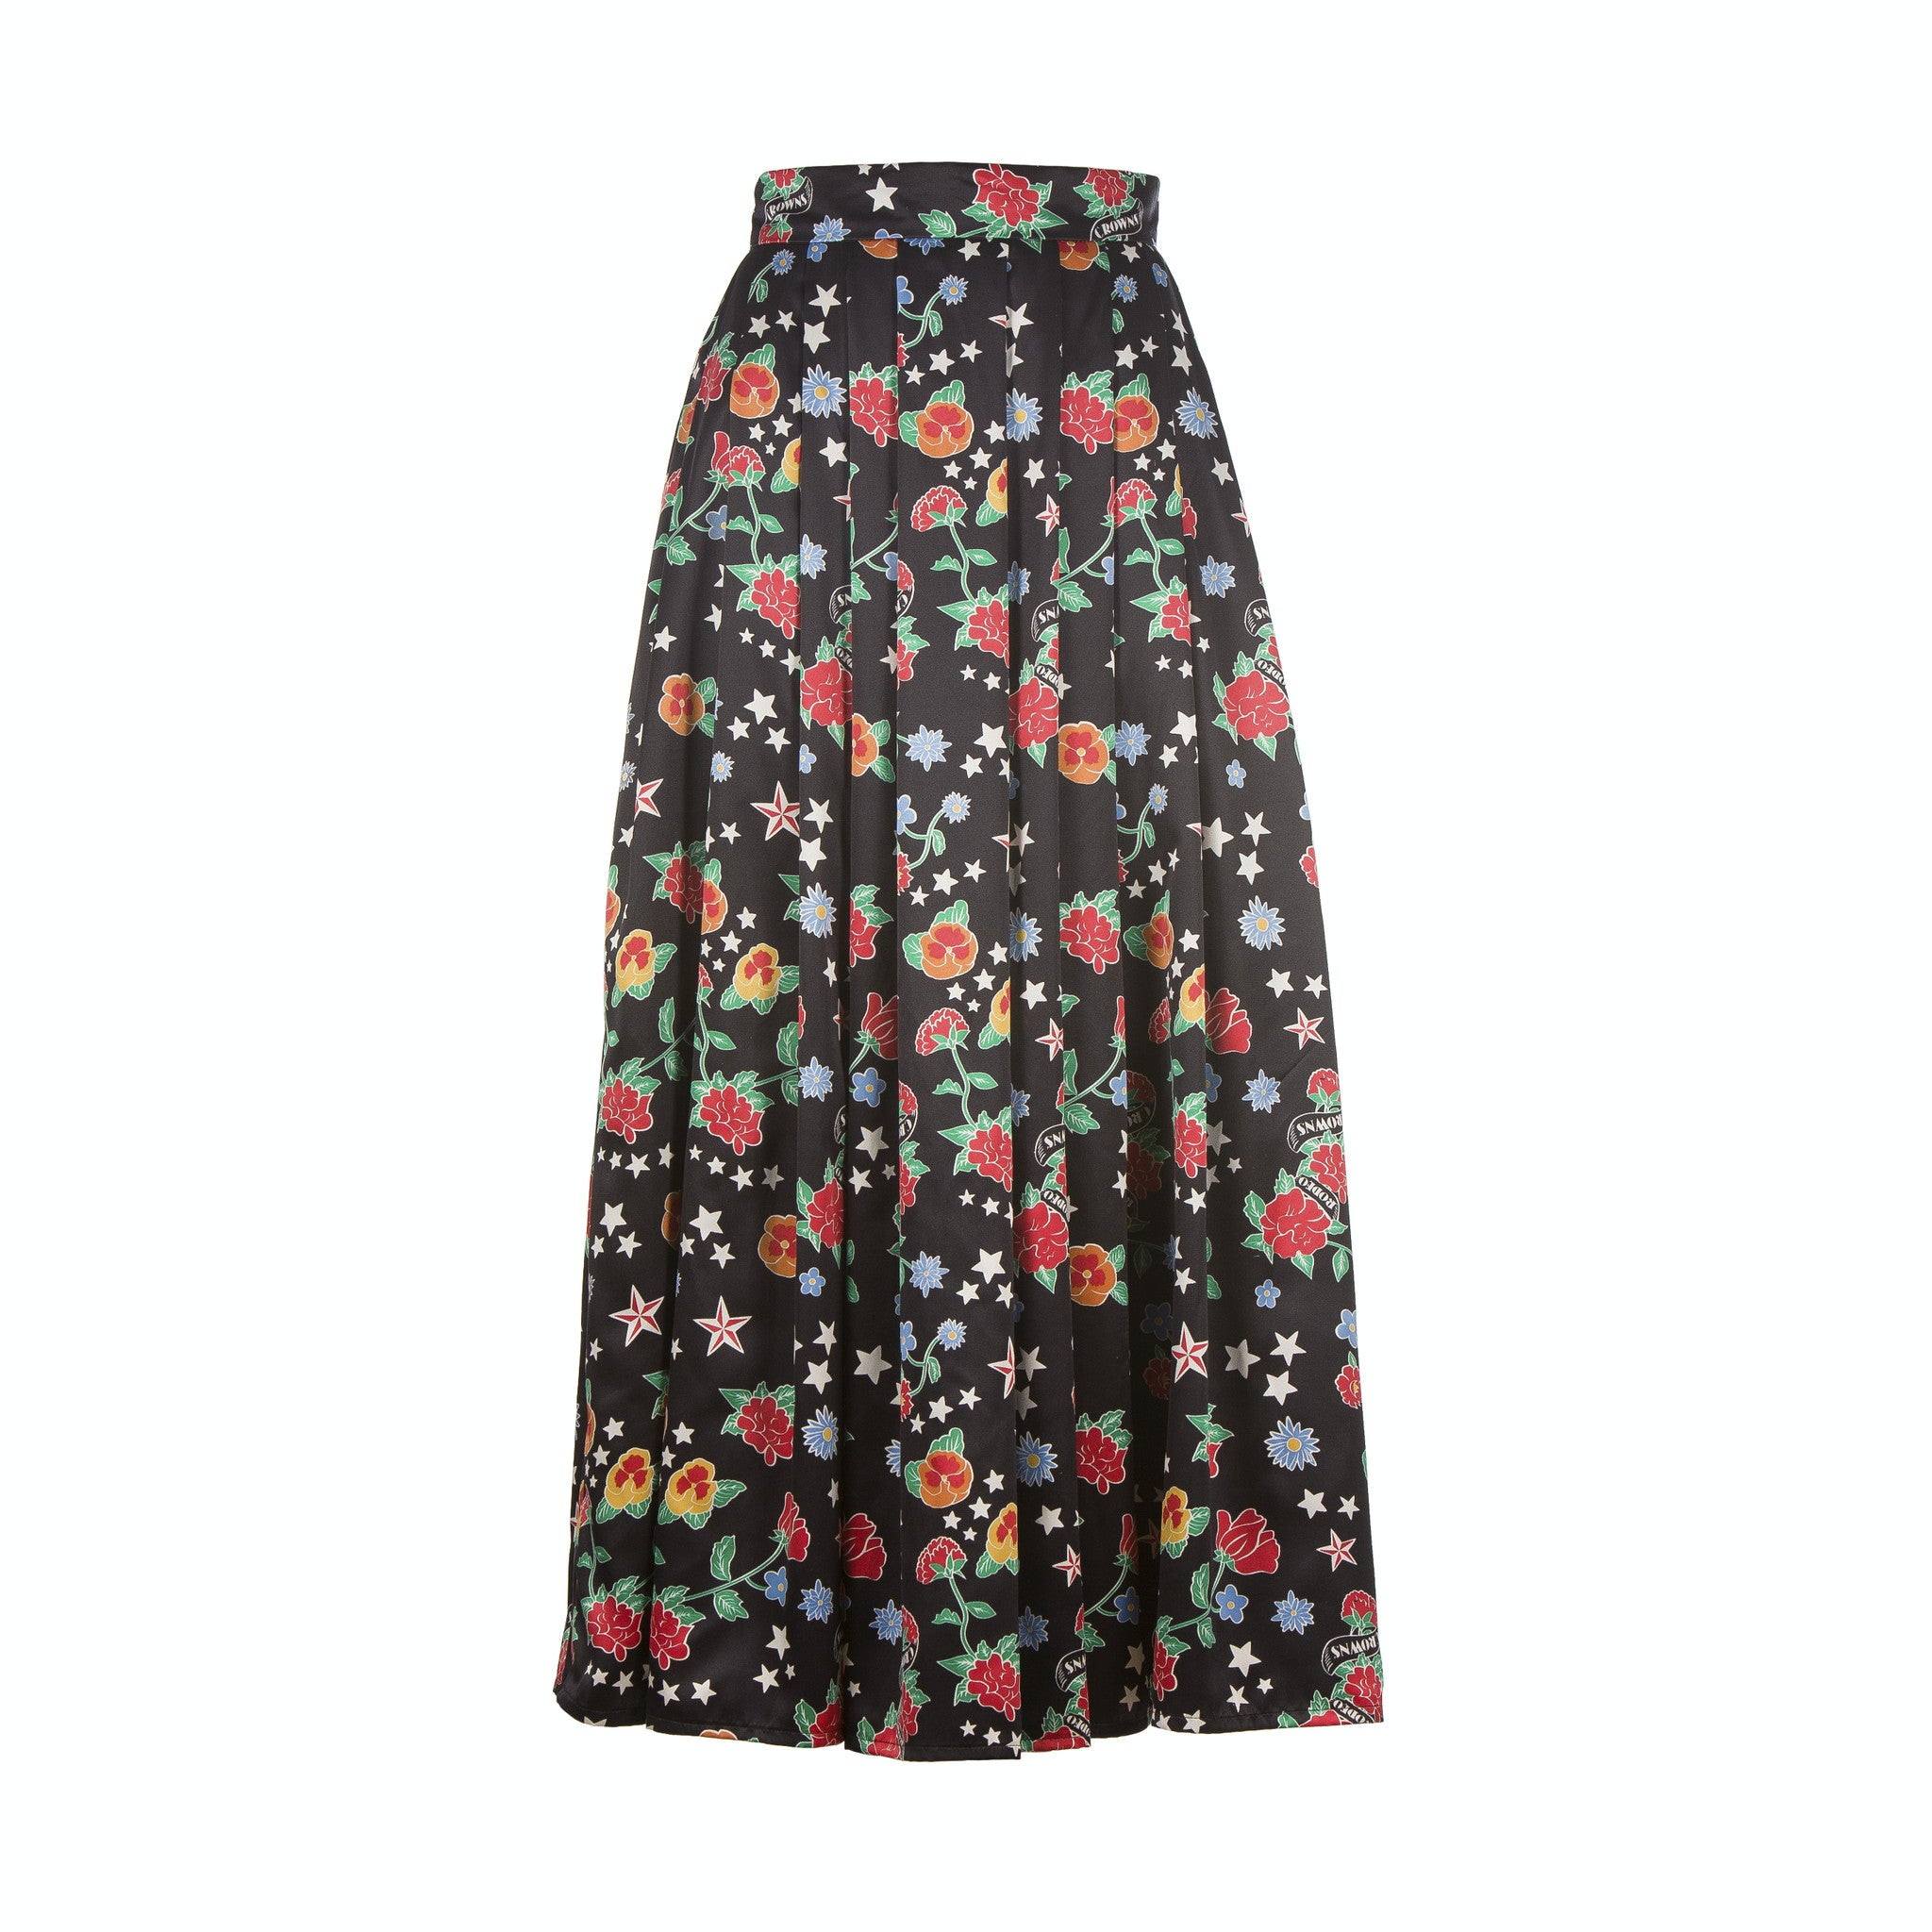 Skirt - extra long - printed satin (S-XXL)